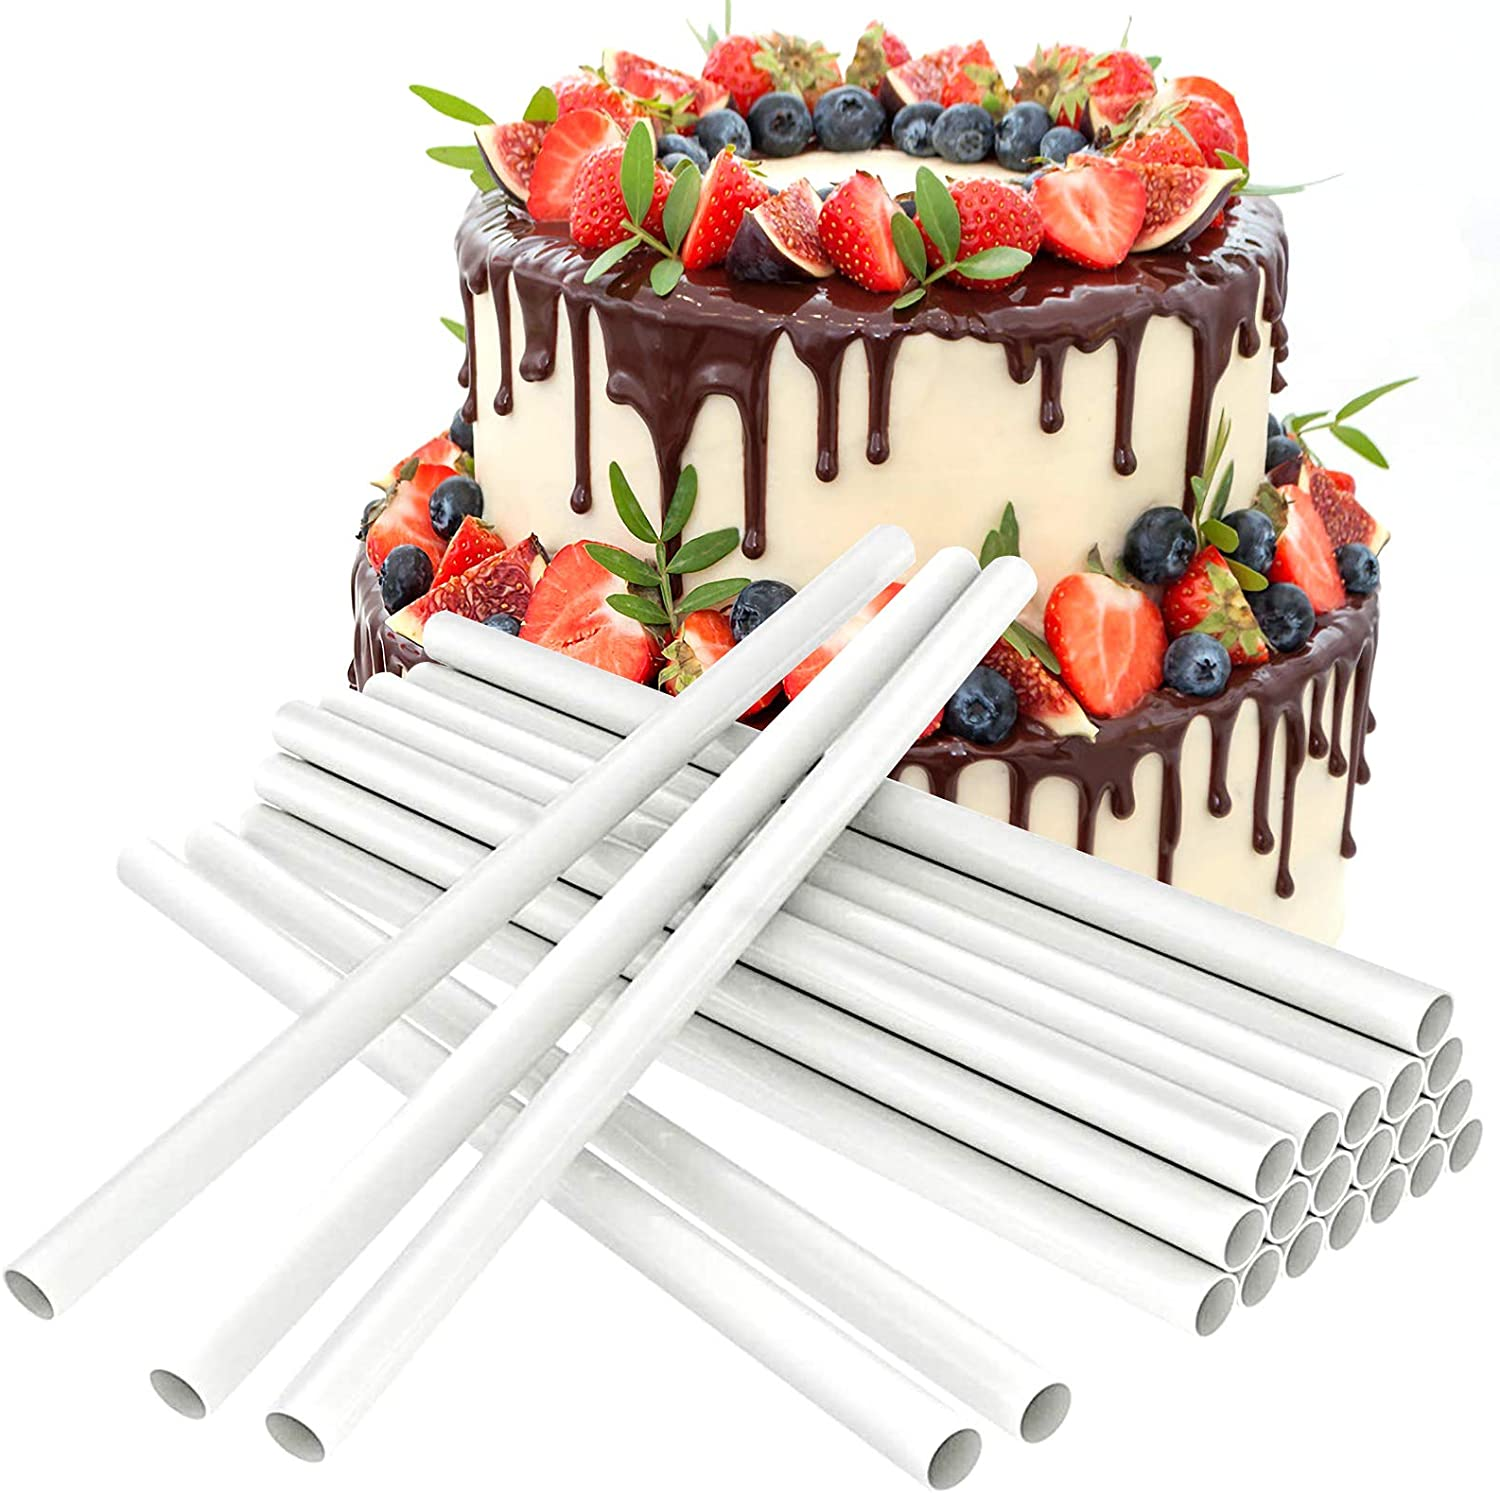 24 PCS Plastic White Cake Dowels Thickened Resuable Support Sticks for Tiered Cakes Stacking(9.5 inch length)